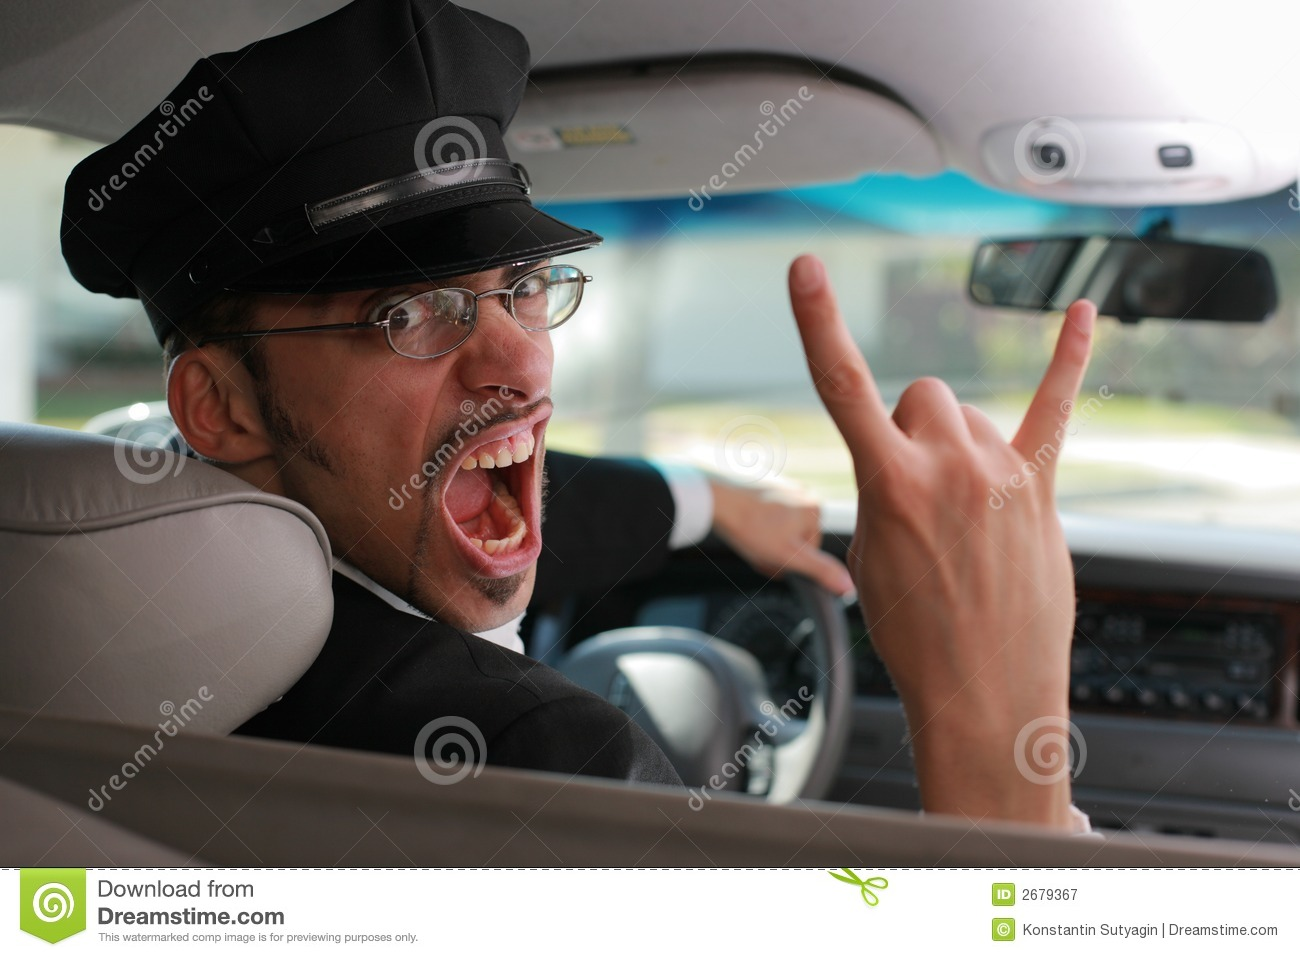 How to Start a Chauffeur Business